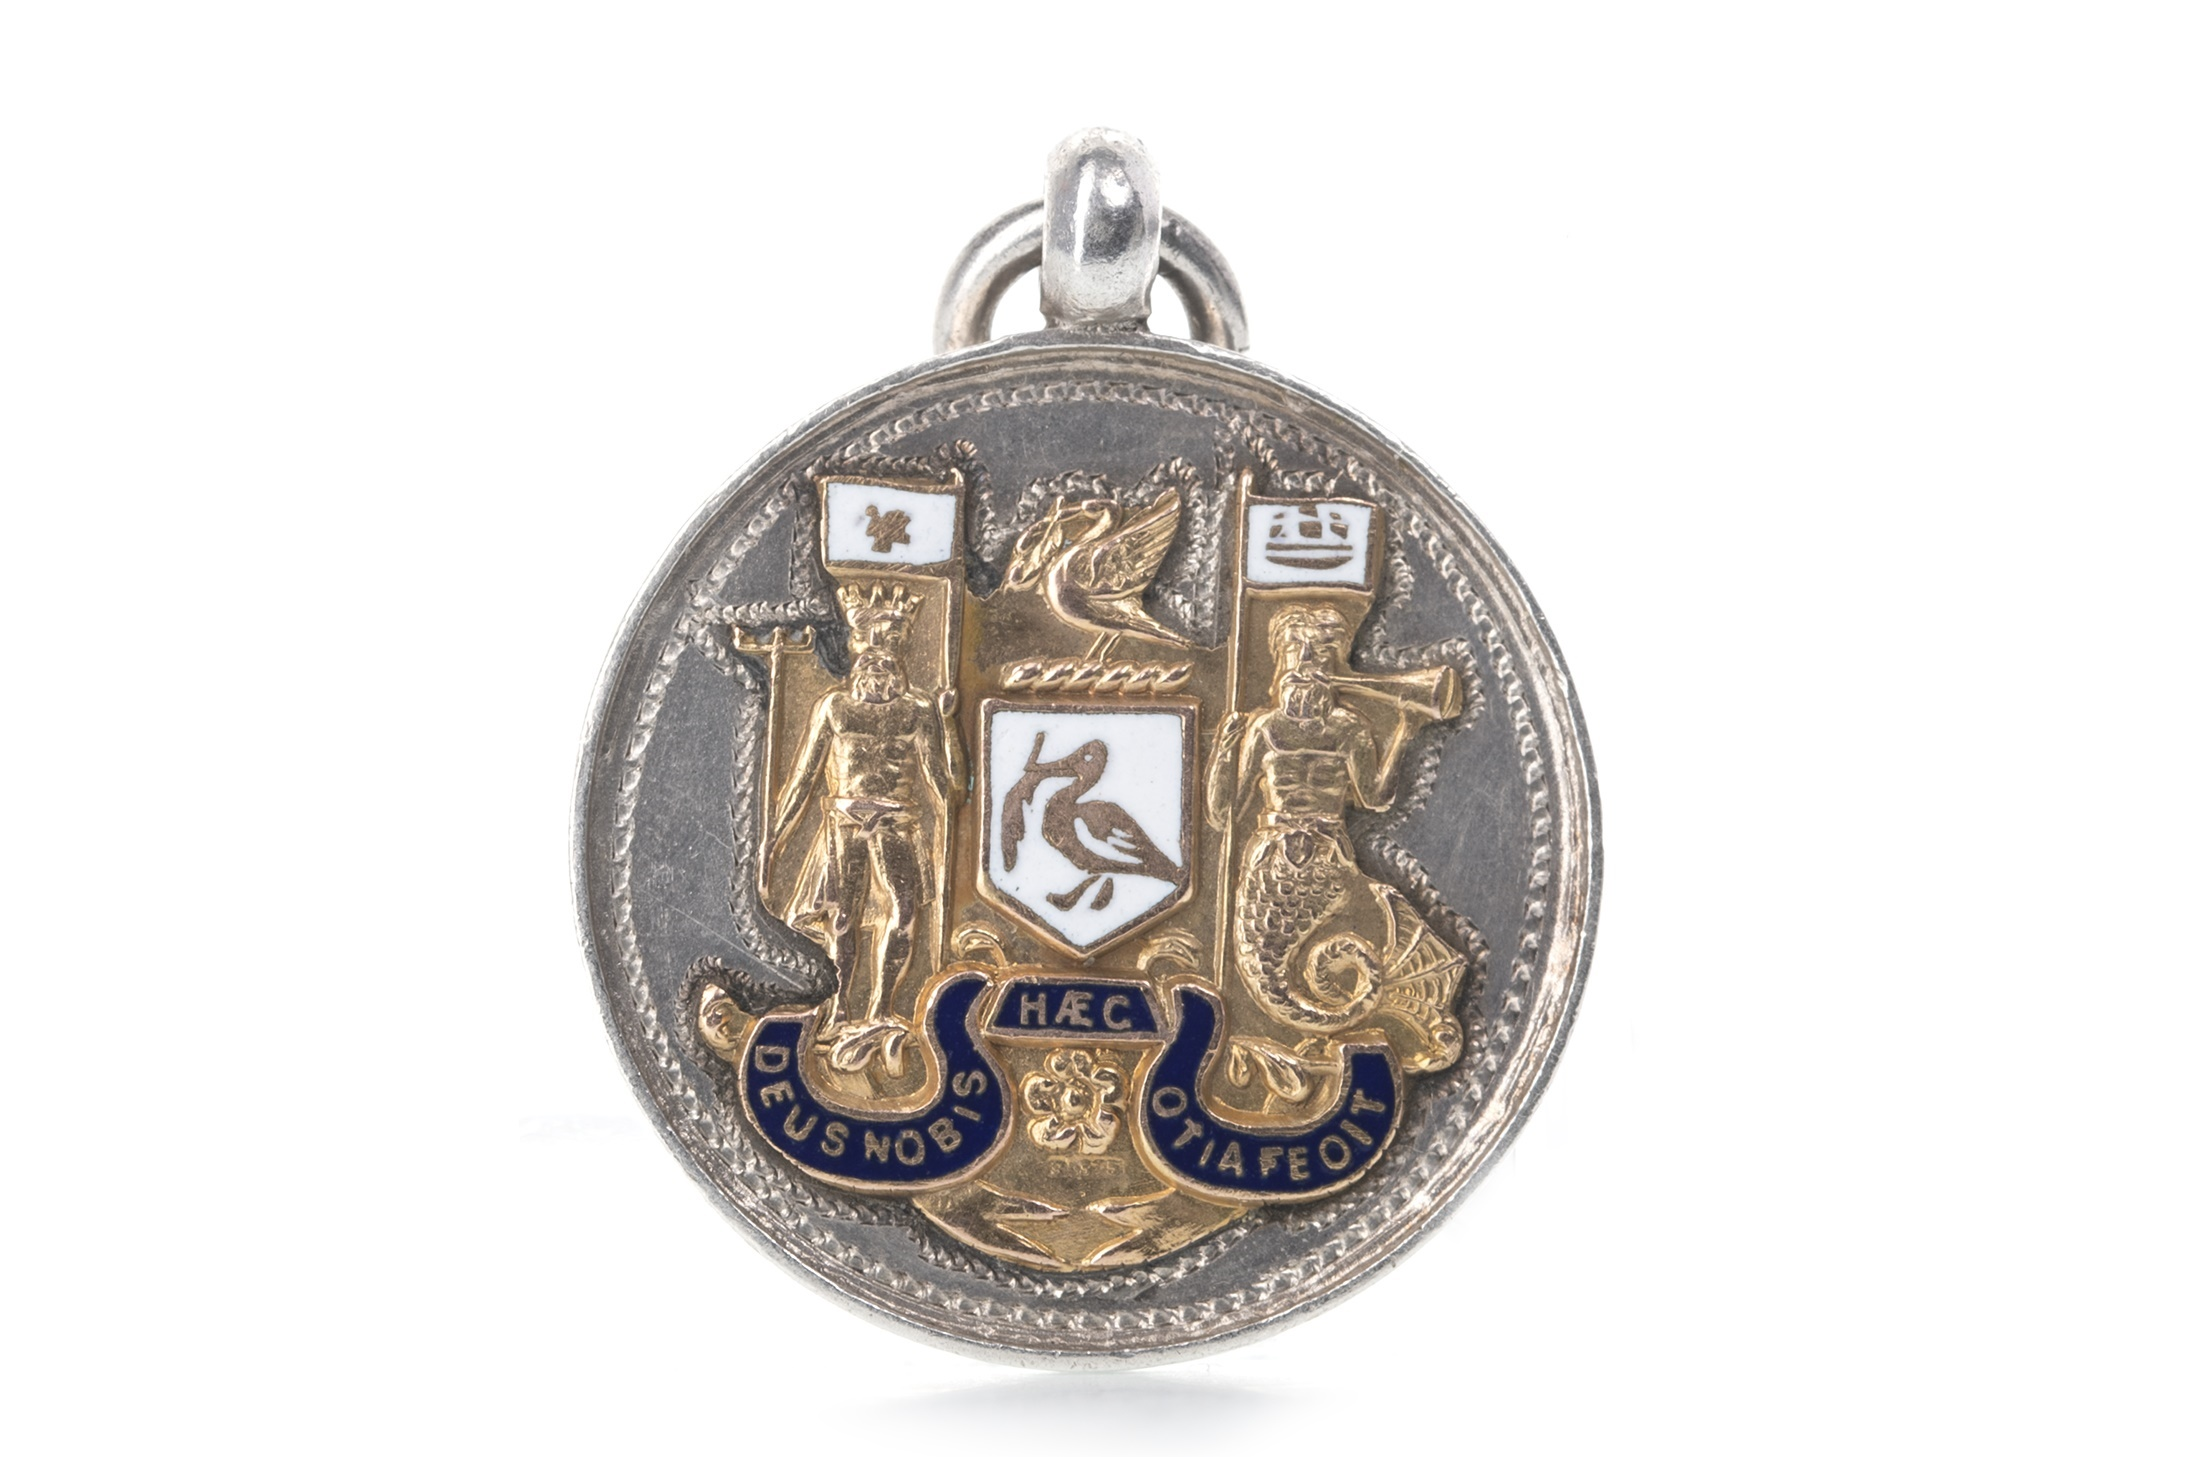 Lot 1765 - A LIVERPOOL HOSPITAL CUP SILVER MEDAL 1938